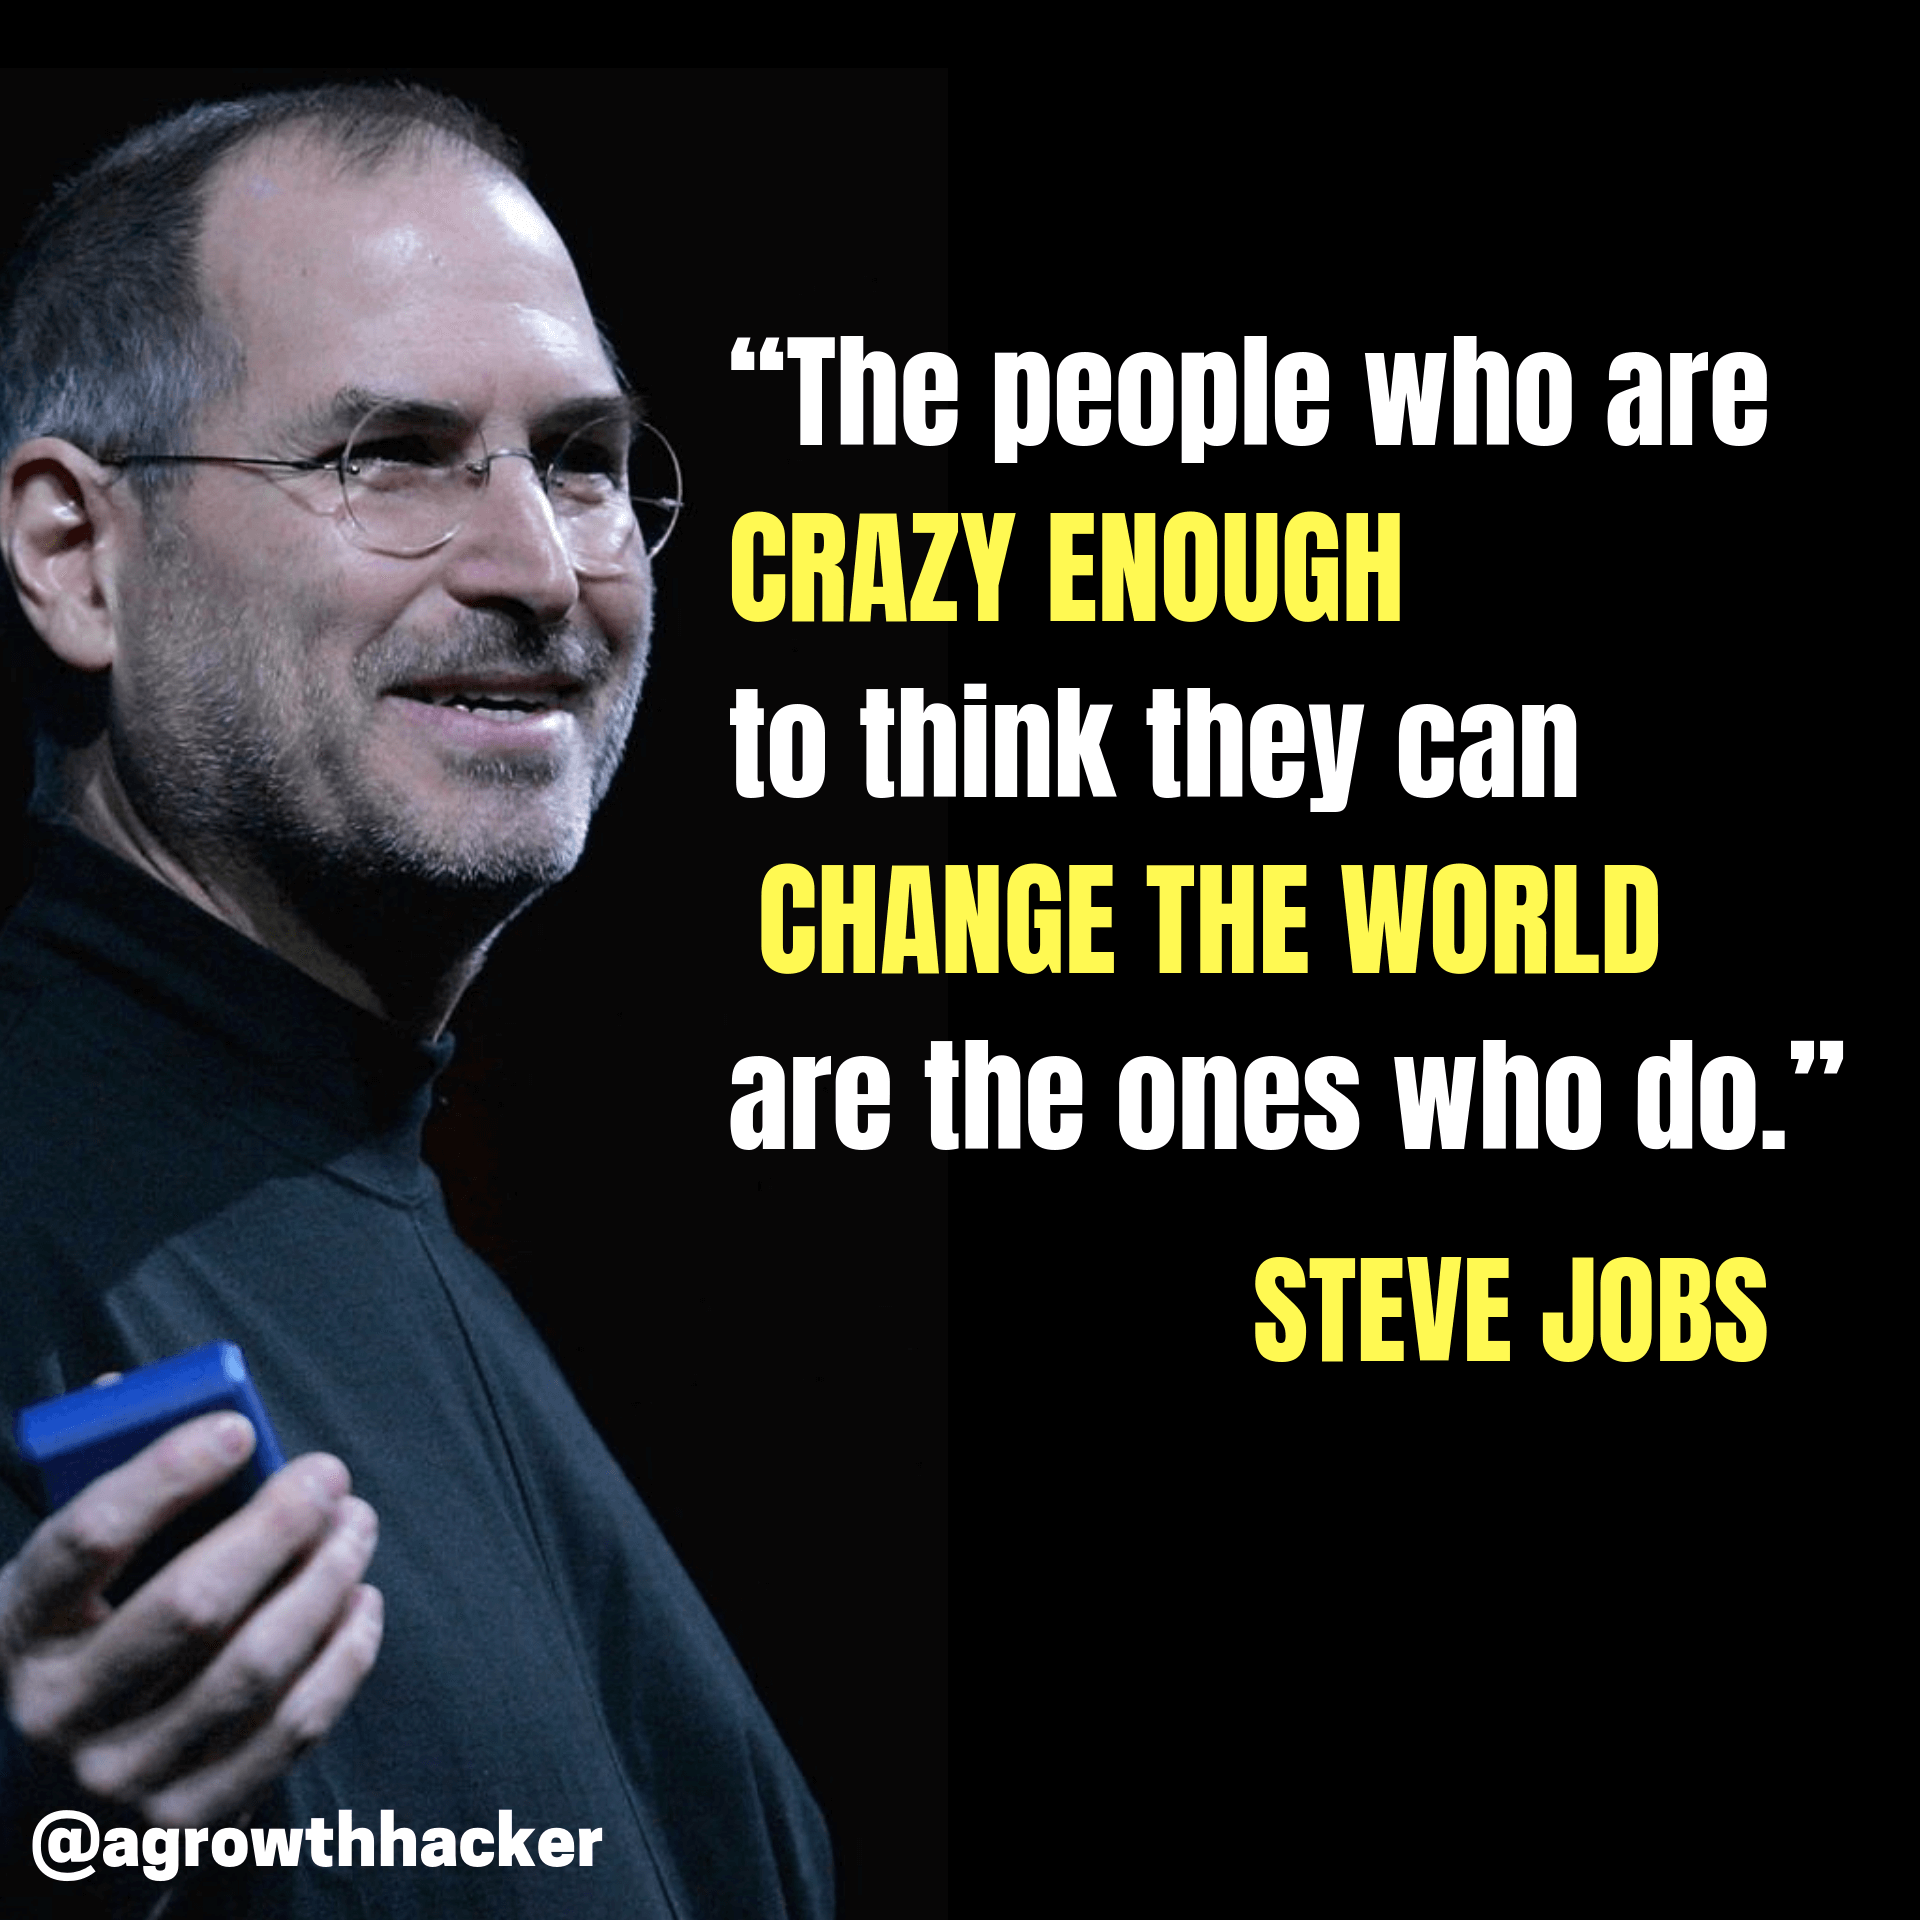 """The people who are crazy enough to think they can change the world are the ones who do."" – Steve Jobs"